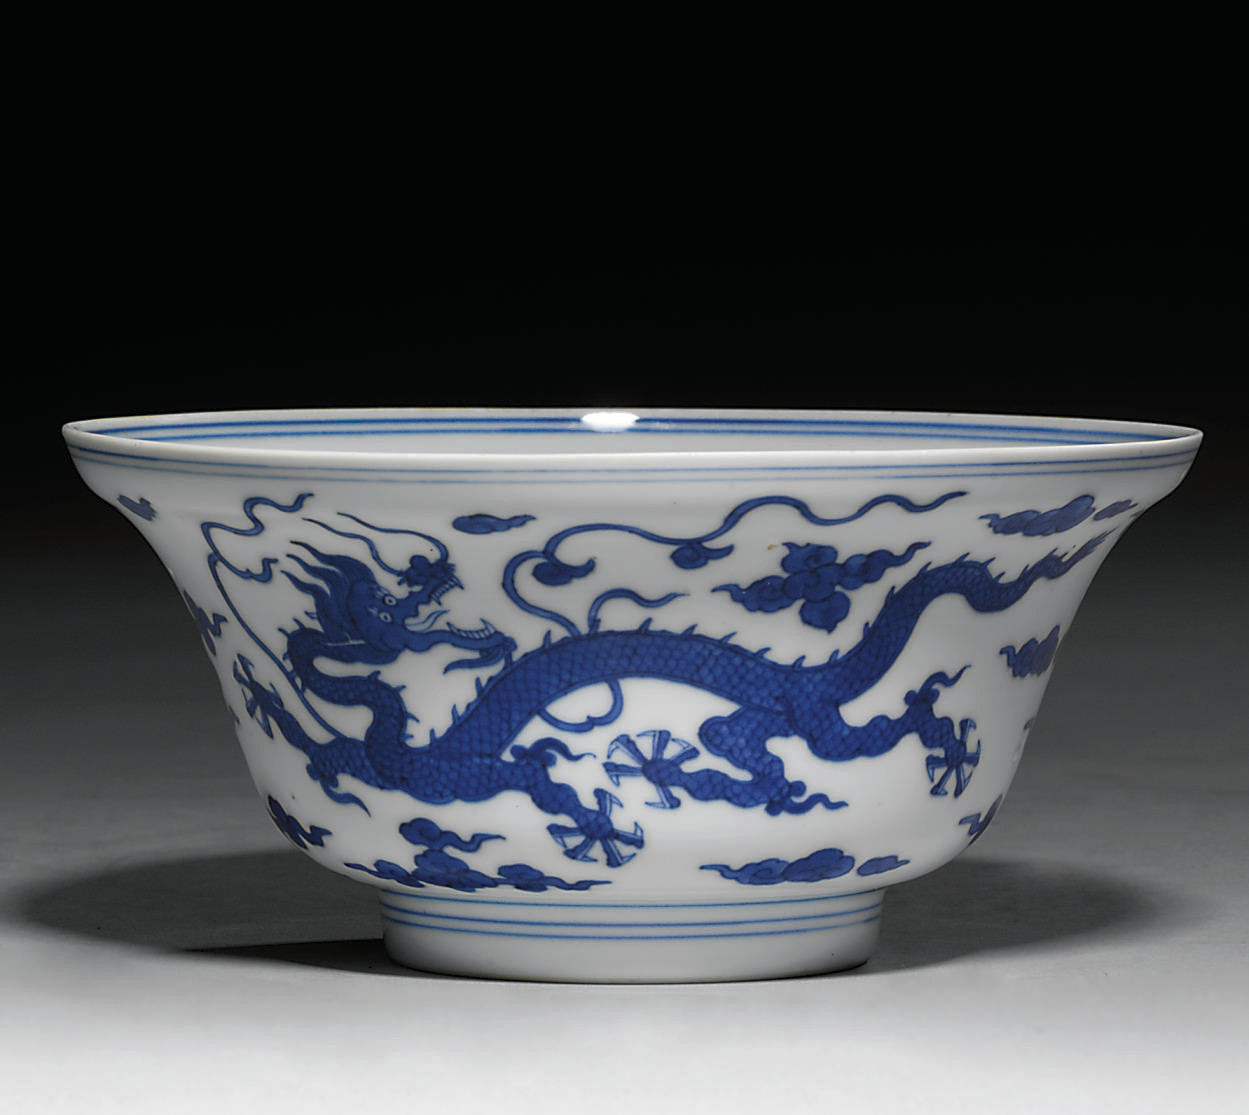 A BLUE AND WHITE OGEE-FORM 'DR